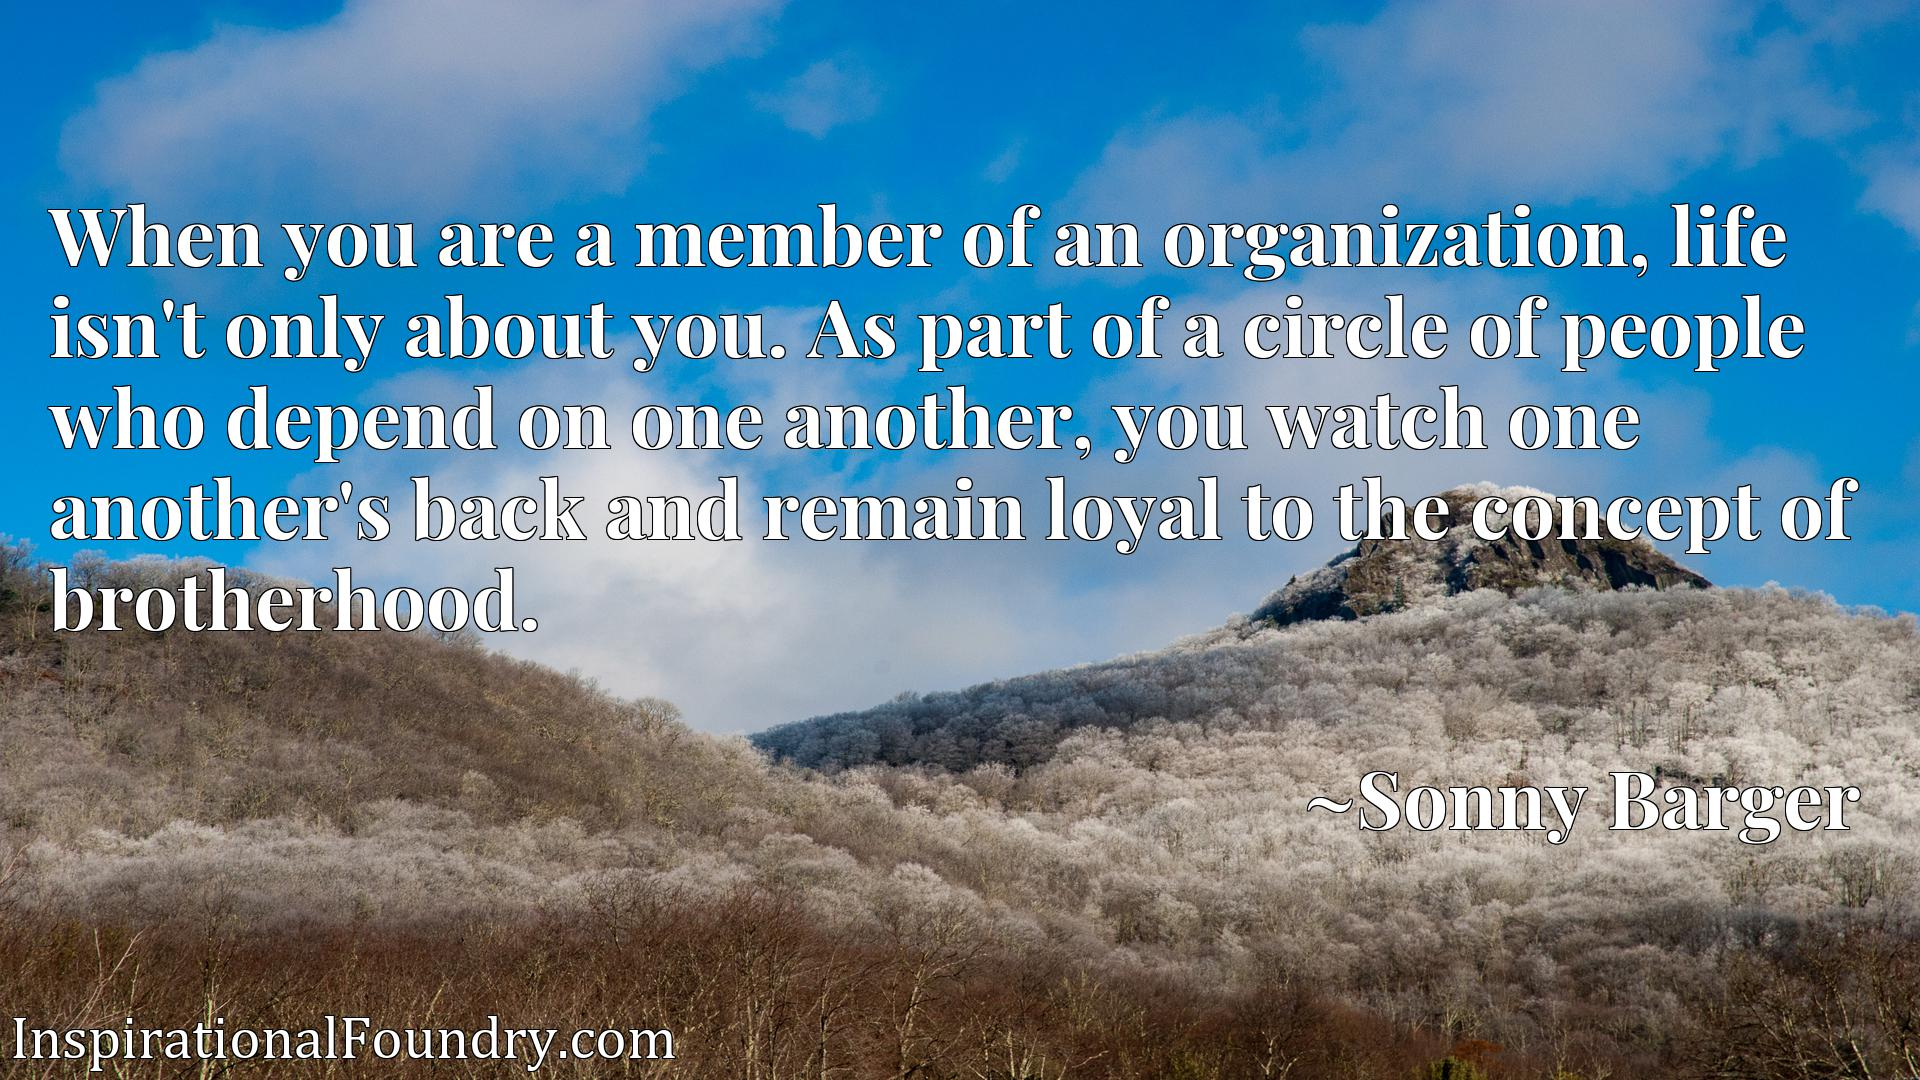 When you are a member of an organization, life isn't only about you. As part of a circle of people who depend on one another, you watch one another's back and remain loyal to the concept of brotherhood.